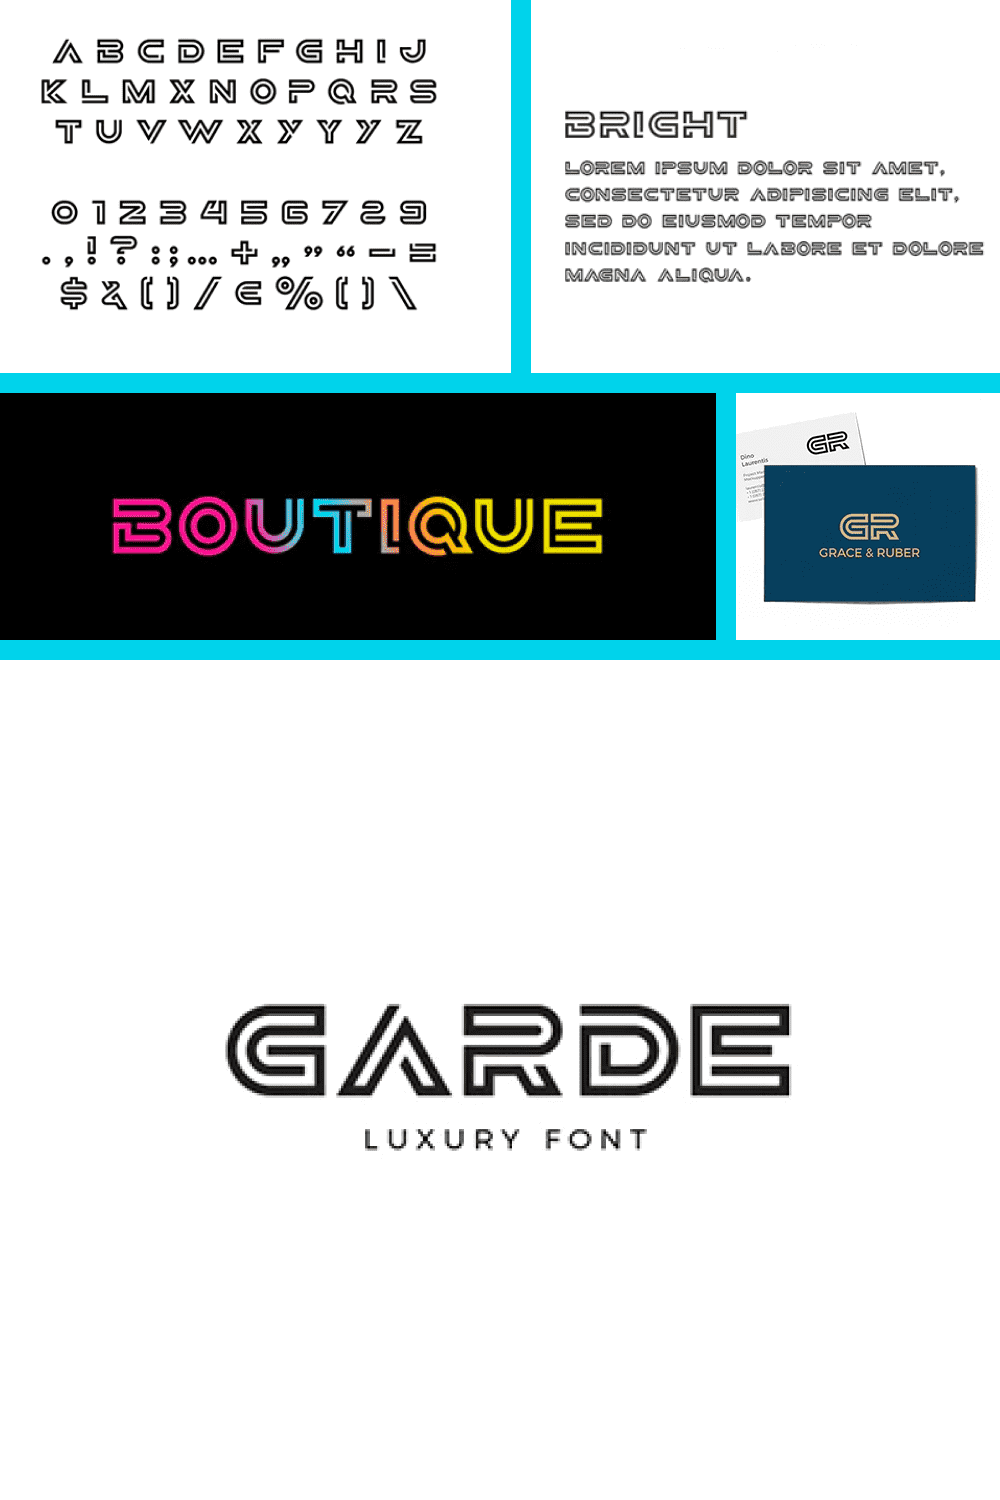 Dark outline and hollow letters will be a perfect match for luxury beauty, jewelry, and fashion industries.